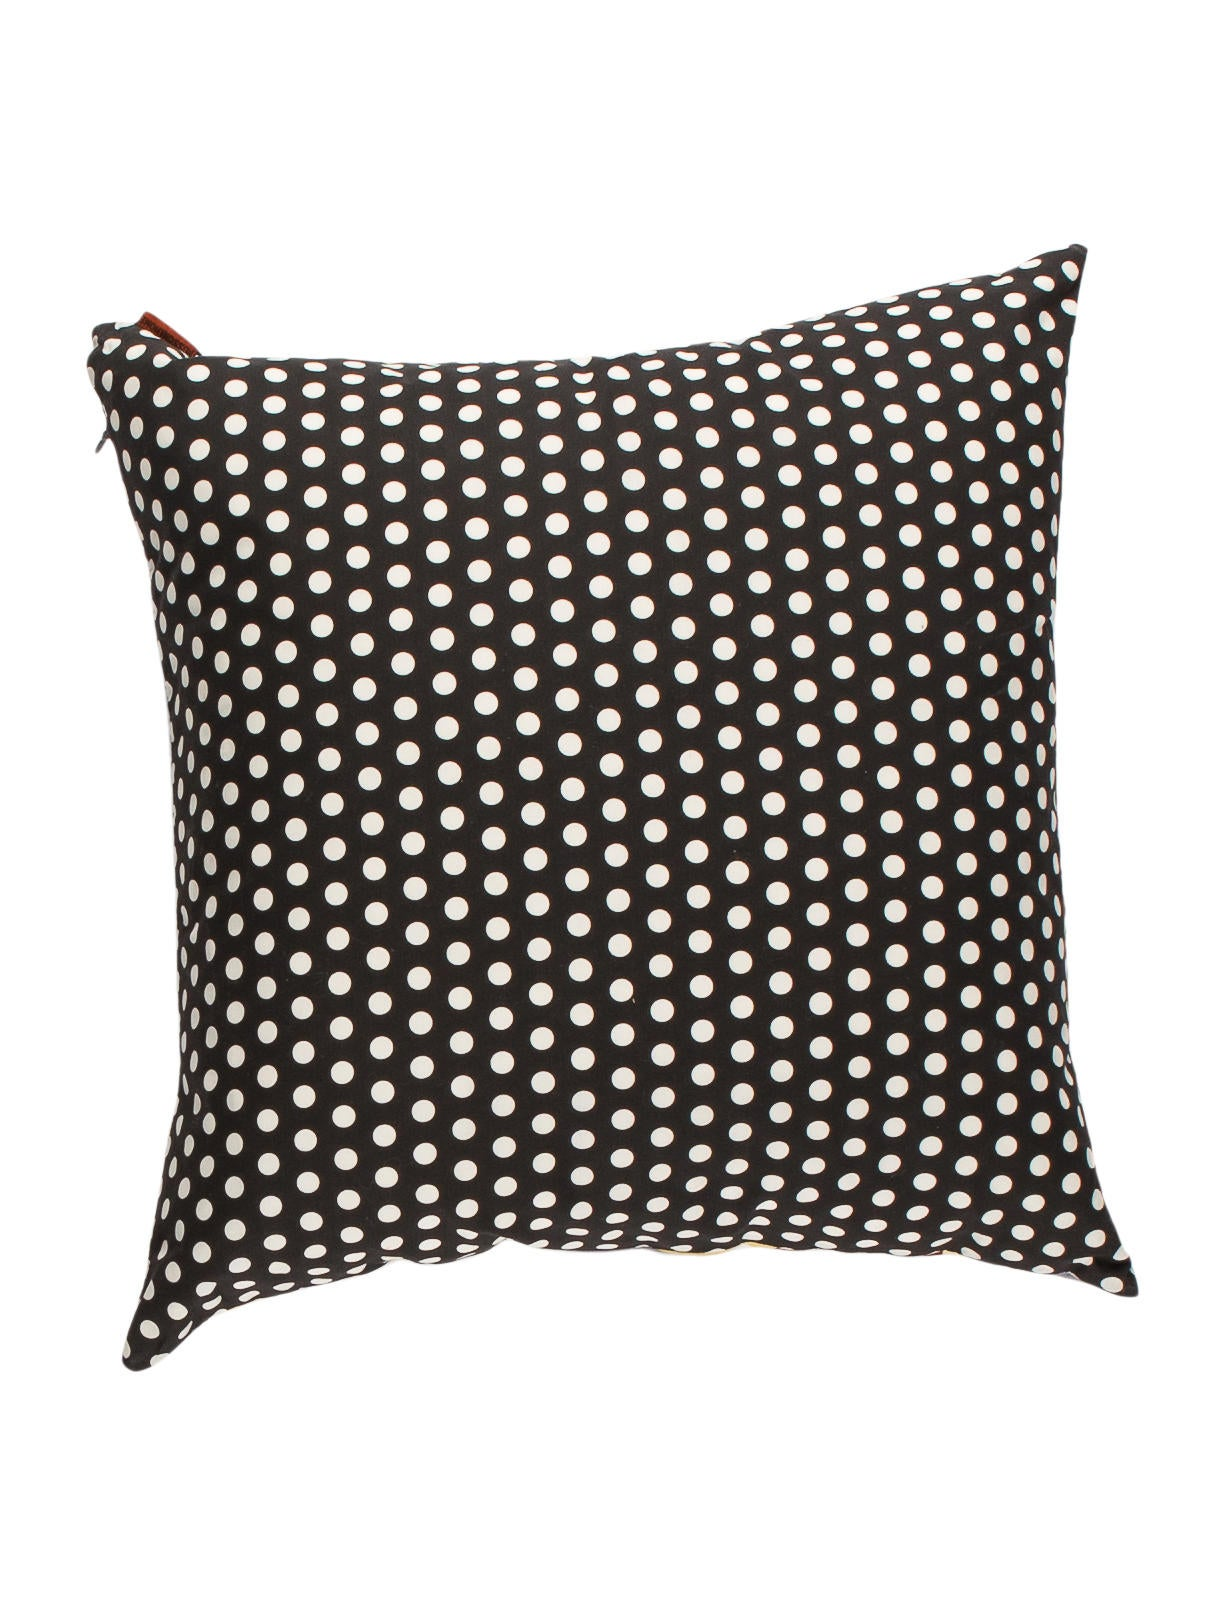 Missoni Floral Throw Pillow - Pillows And Throws - MIS34093 The RealReal